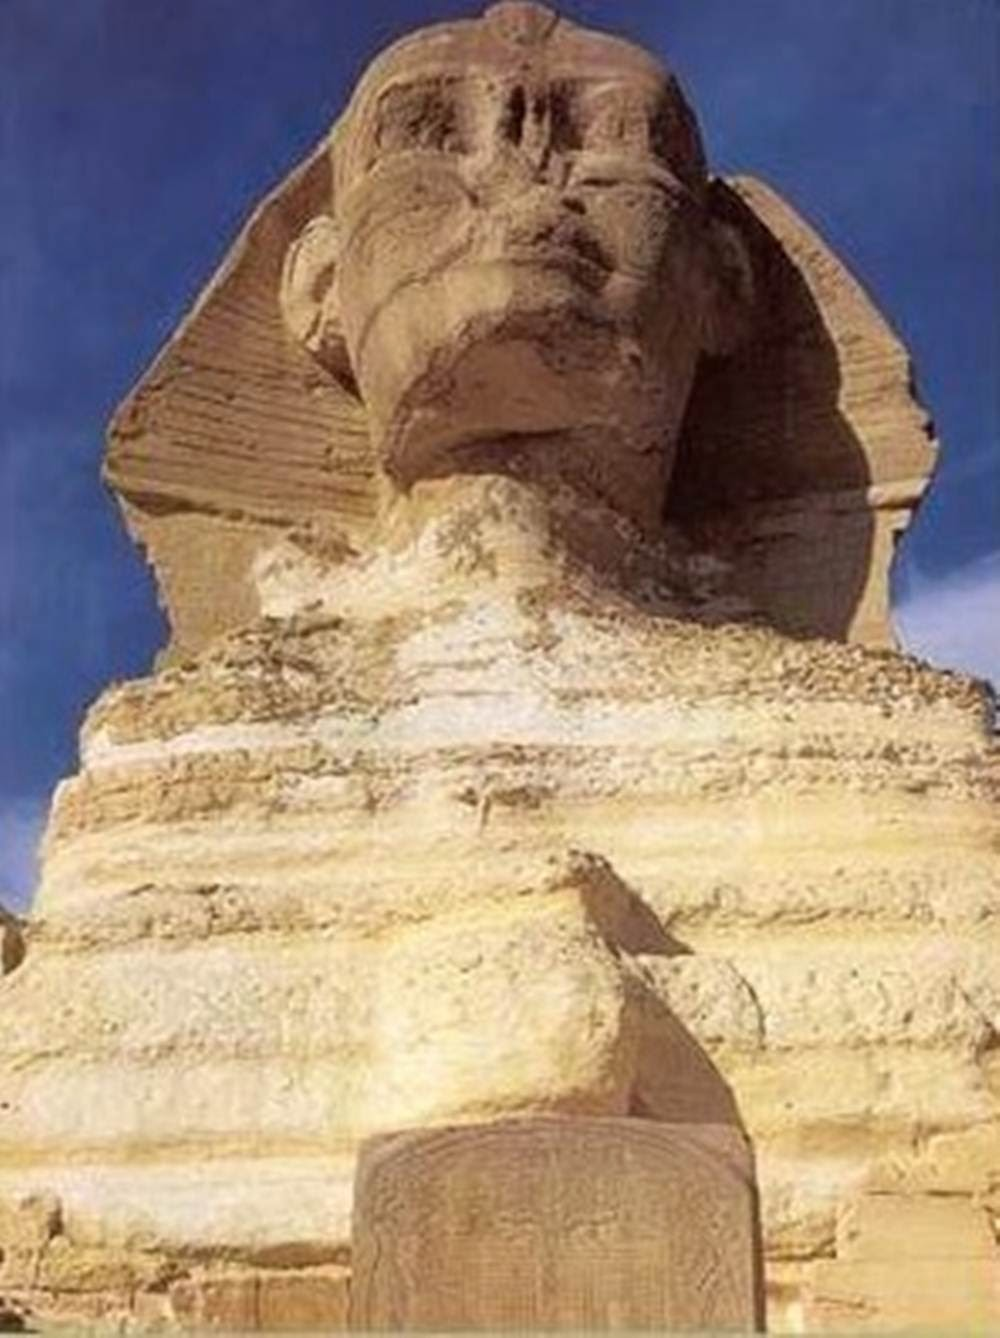 the mysterious great sphinx of giza essay The great sphinx of giza commonly referred to as the sphinx of giza or just the sphinx, is an immense stone sculpture of a creature with the body of a lion and.